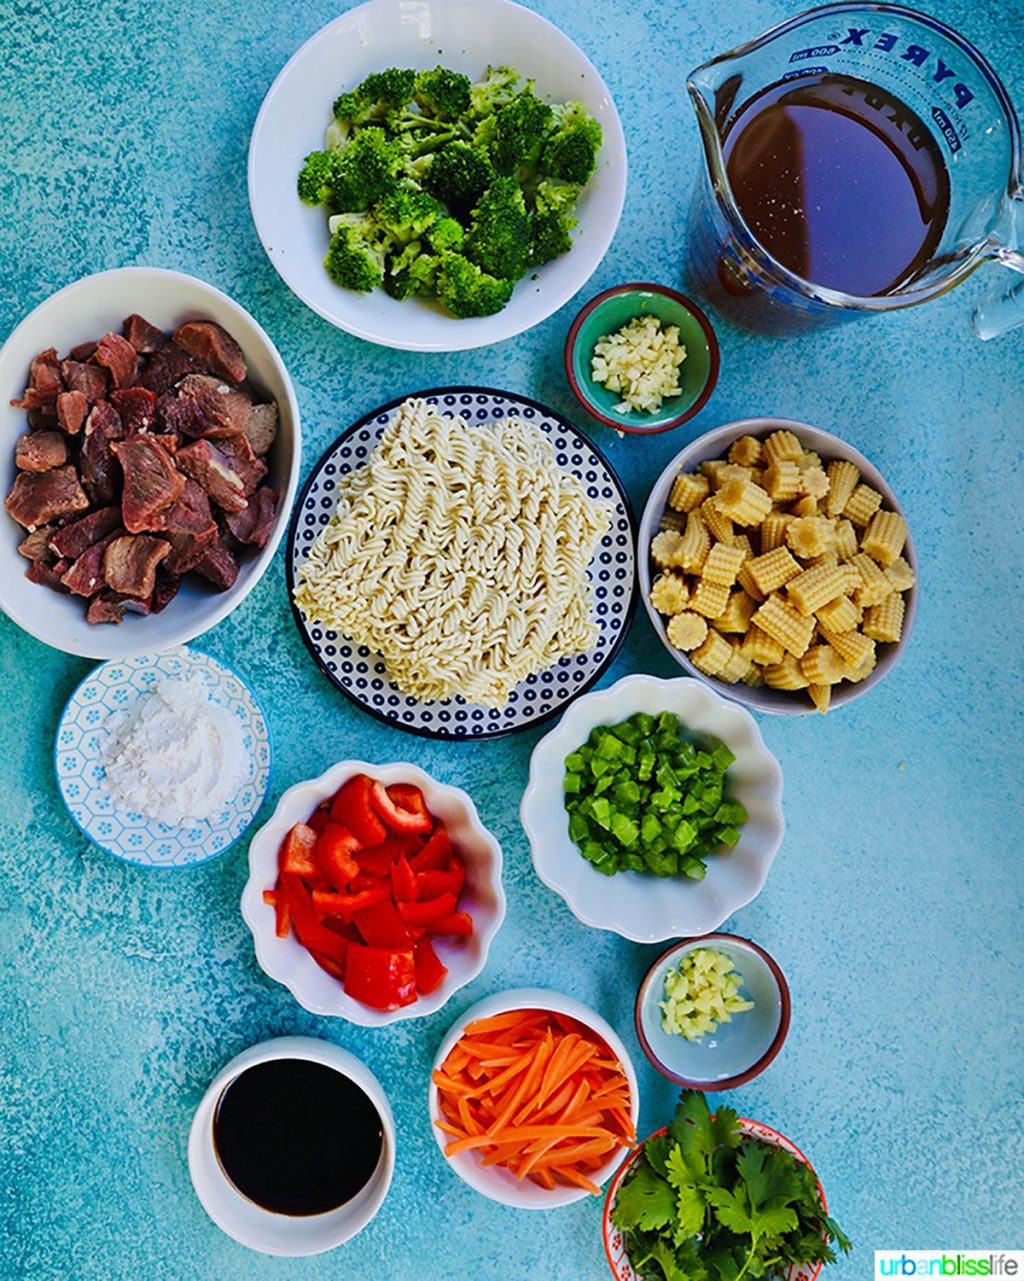 ingredients for beef lo mein noodles